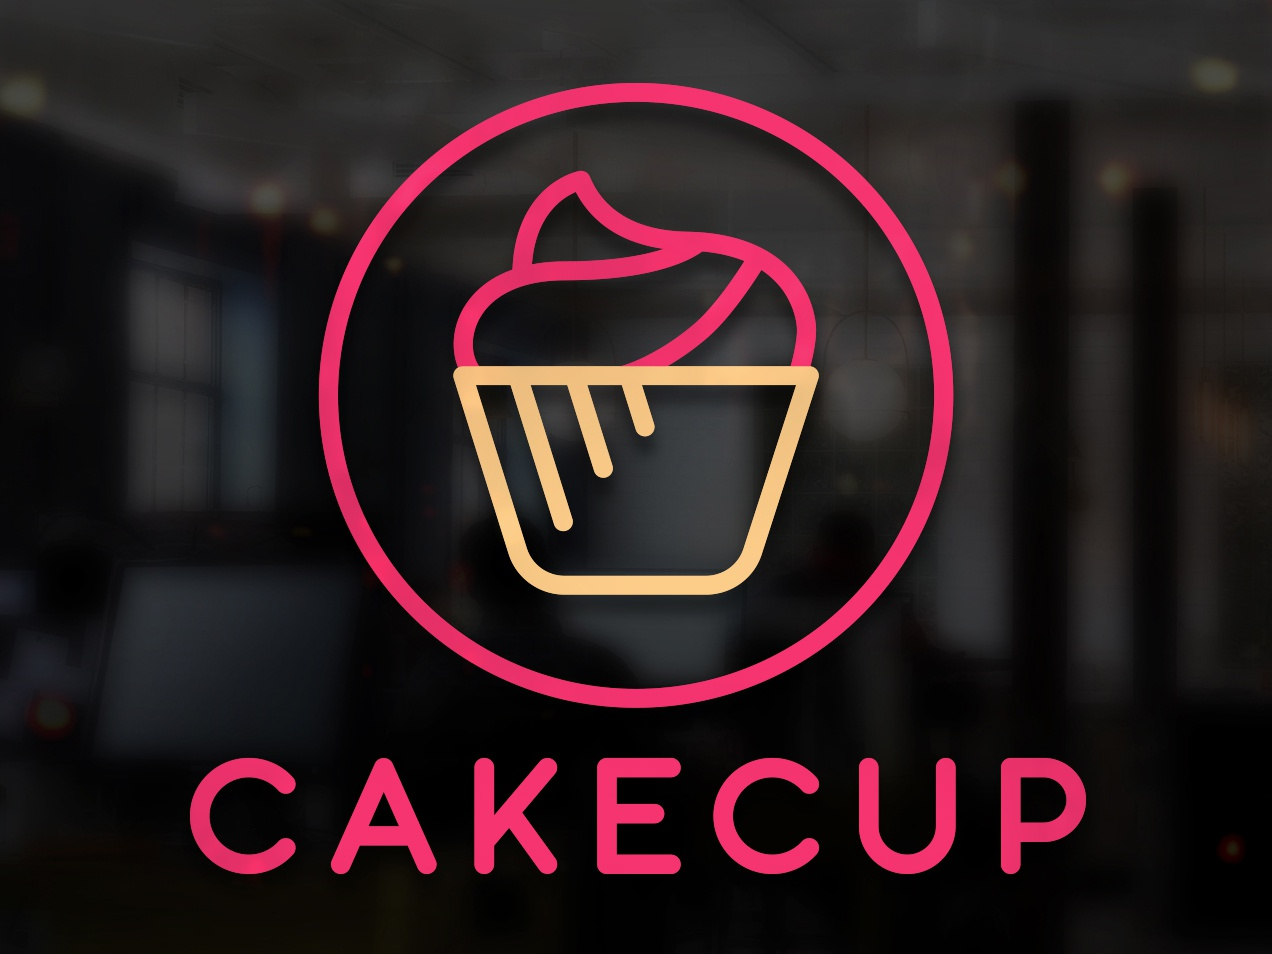 Logo Cupcake By Fabian Krotzer On Dribbble